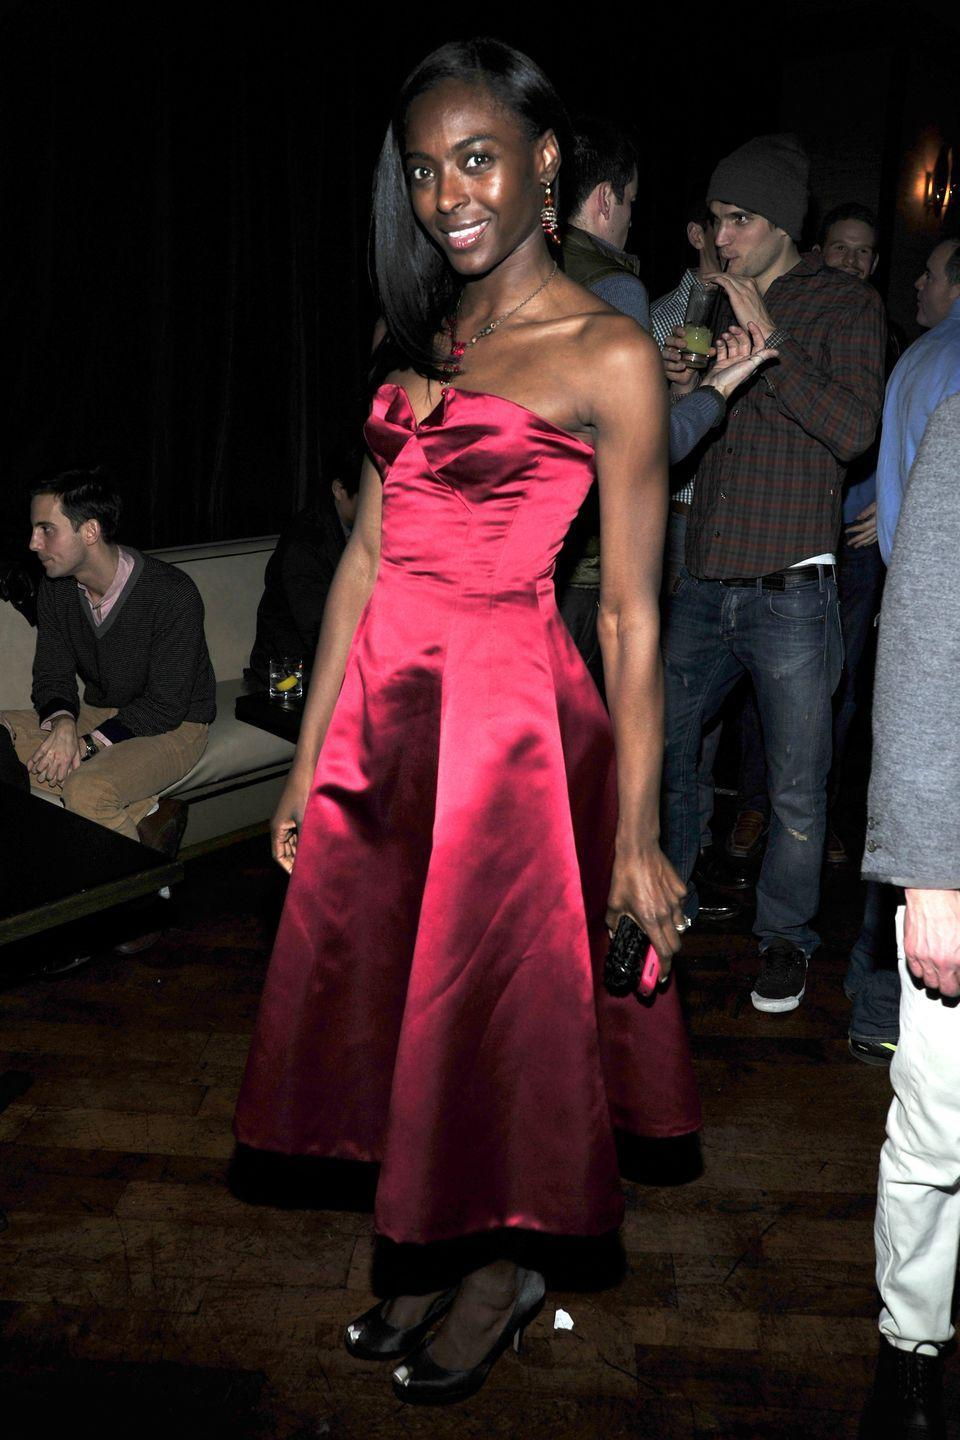 """<p>The American-born Princess Keisha Omilana of Nigeria met her husband, Prince Adekunle """"Kunle"""" Adebayo Omilana, on her way to a model casting in New York City. The Princess has continued to model after becoming royalty.</p>"""